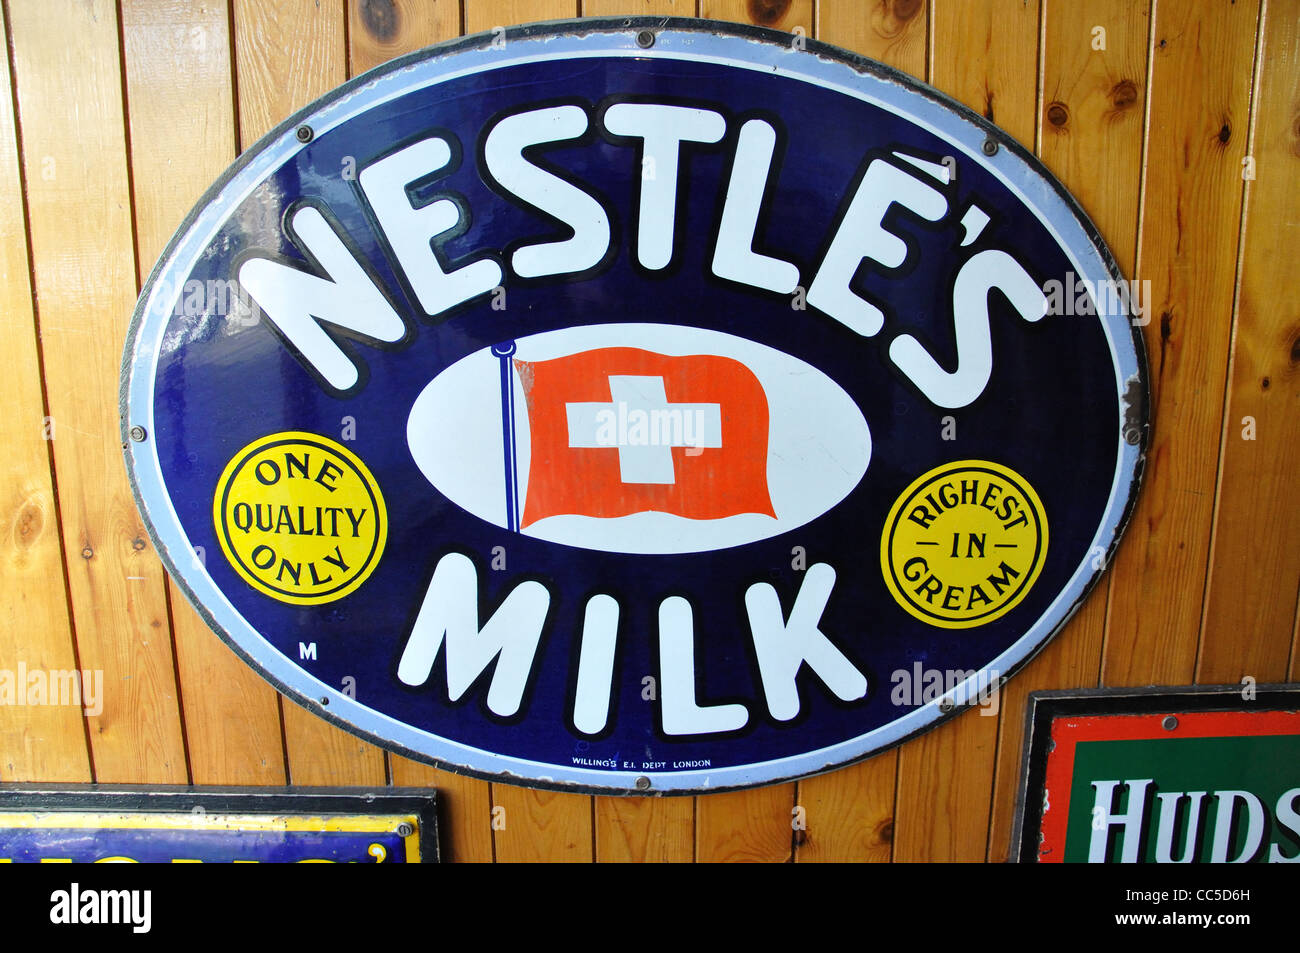 Nestle milk advert sign in Edwardian Town, Beamish, The North of England Open Air Museum, County Durham, England, - Stock Image